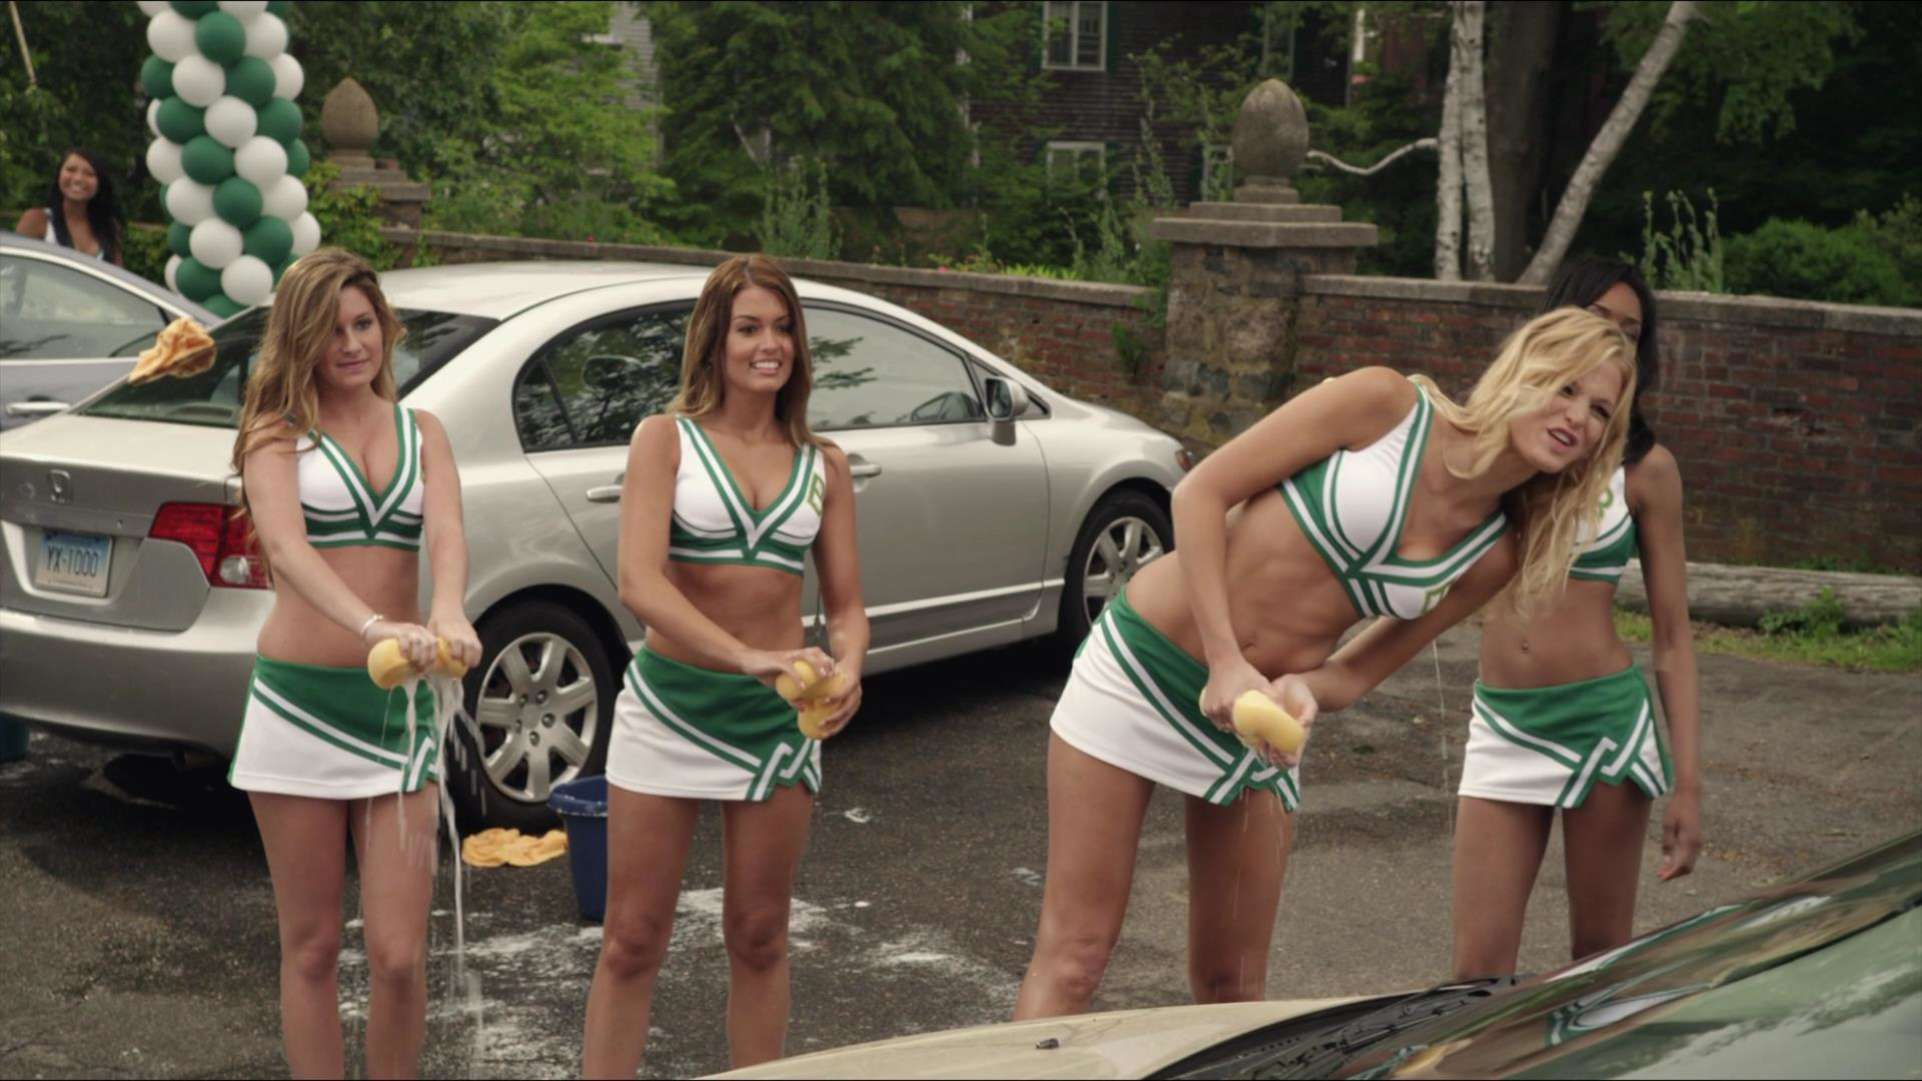 Erin Heatherton 2013 : Erin Heatherton Hot in Grown Ups 2-03